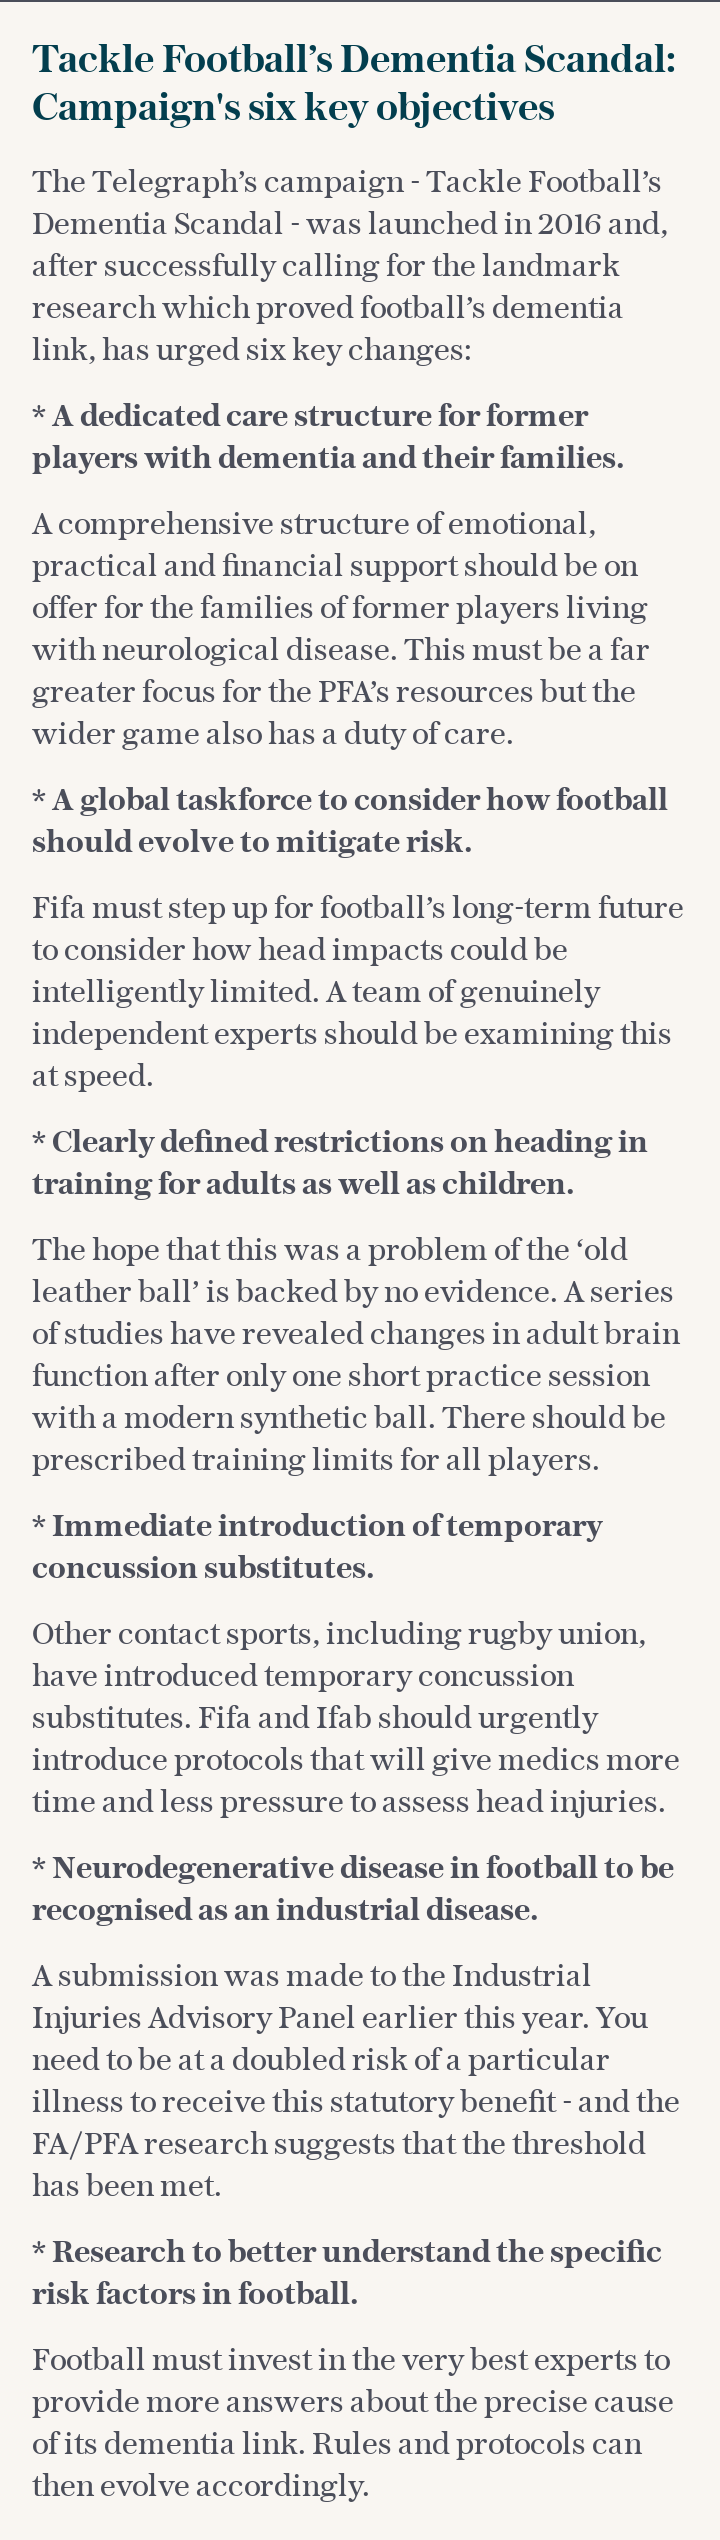 The Telegraph's campaign - Tackle Football's Dementia Scandal